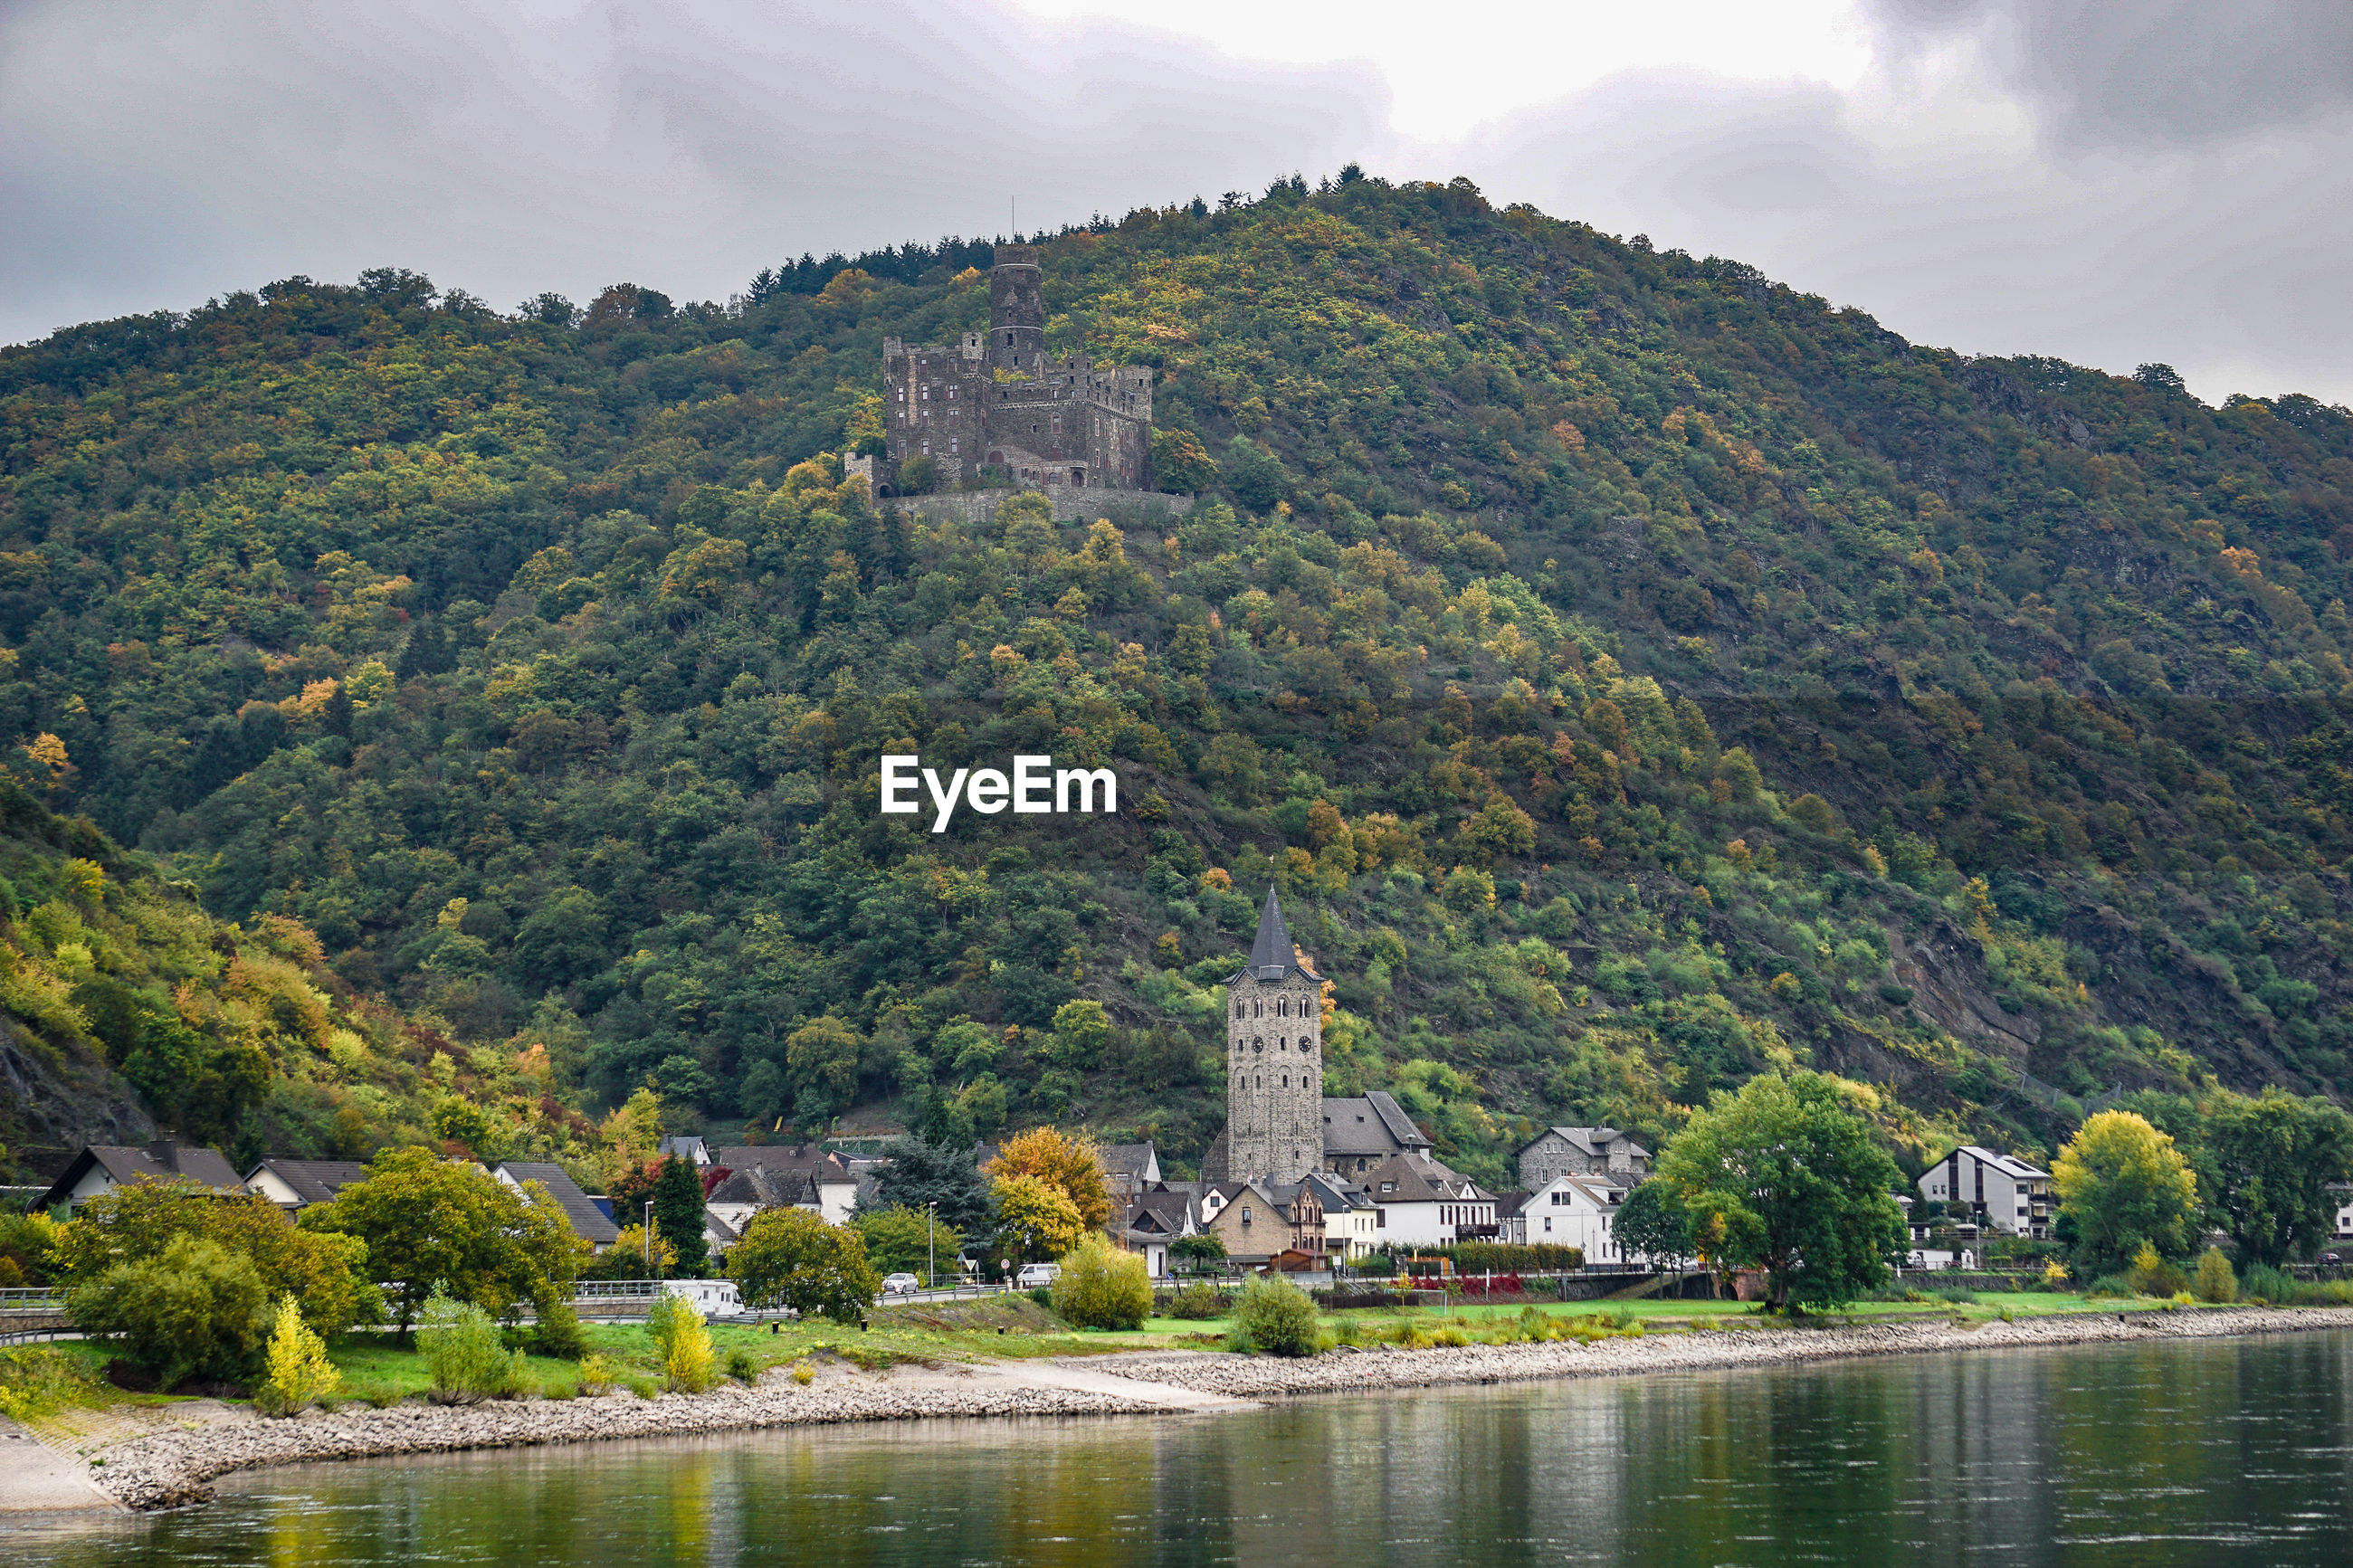 Mountain by river rhine